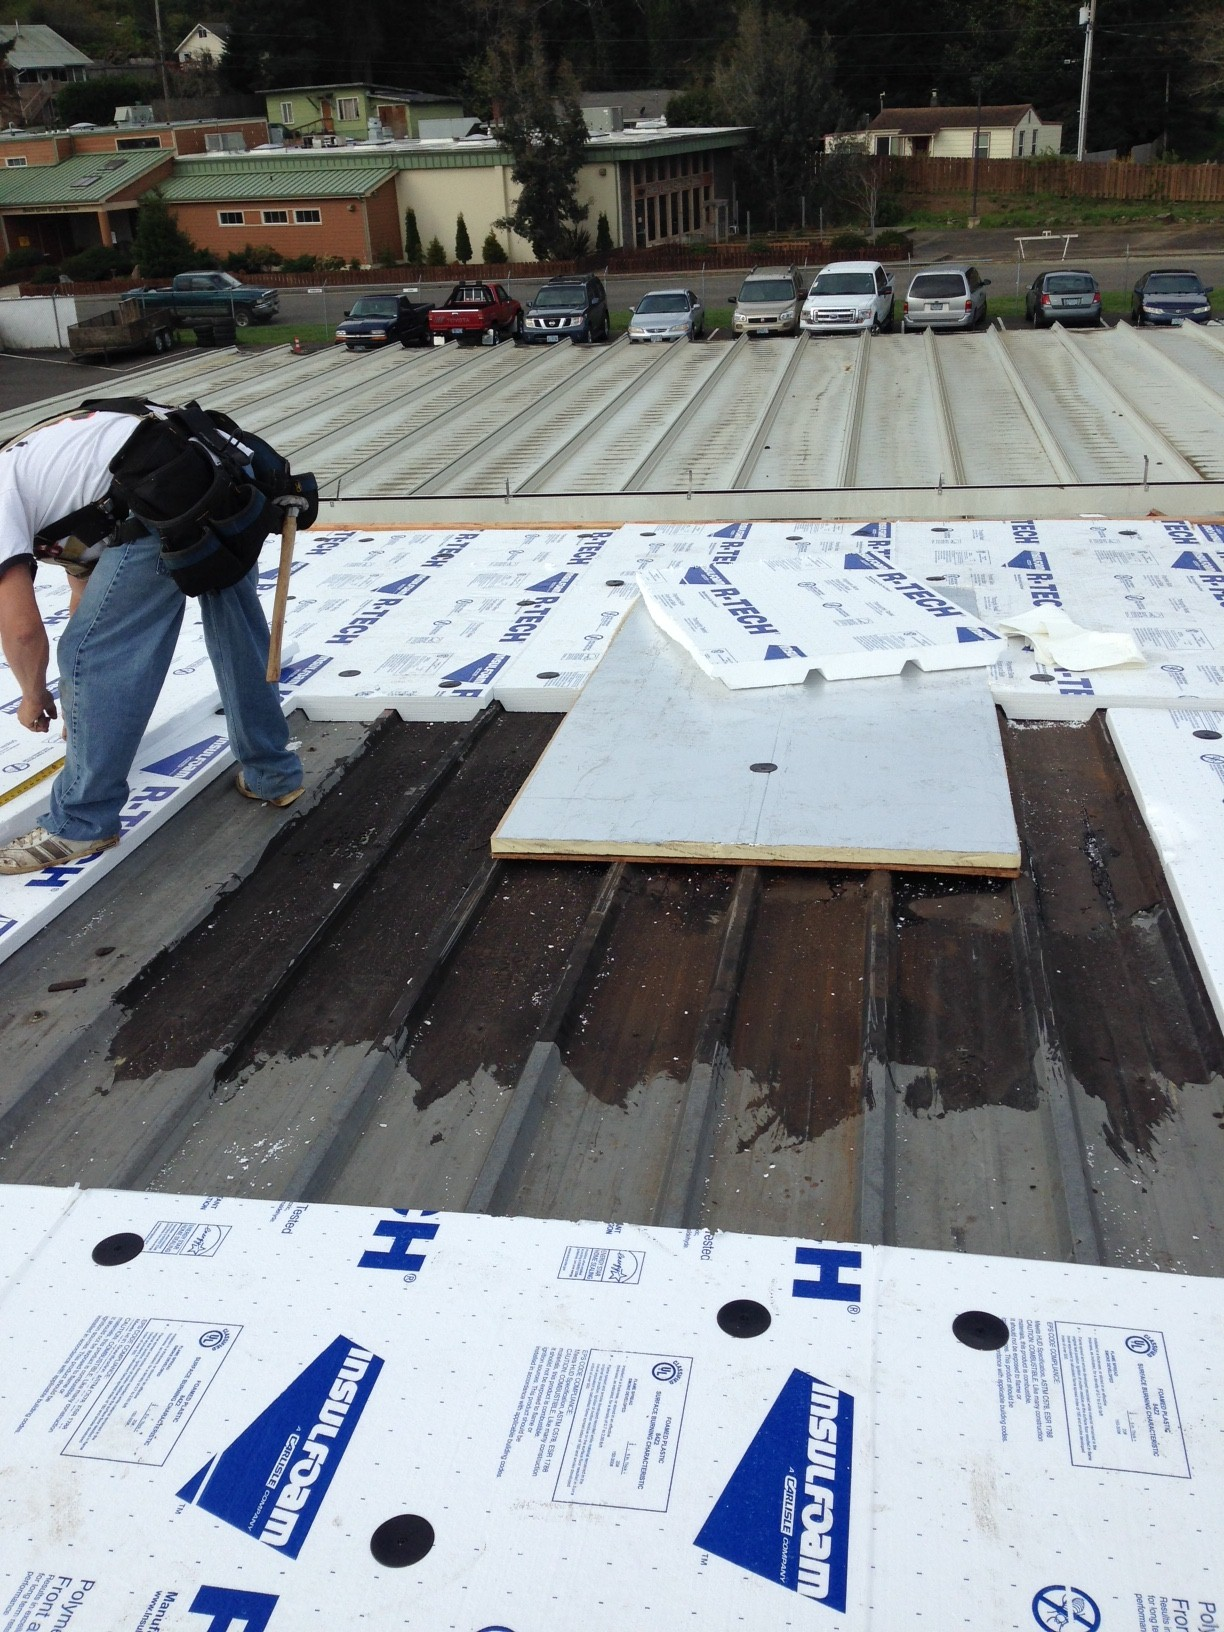 New Flat Roof For Coos Bay Toyota Flat Roof Specialist Com